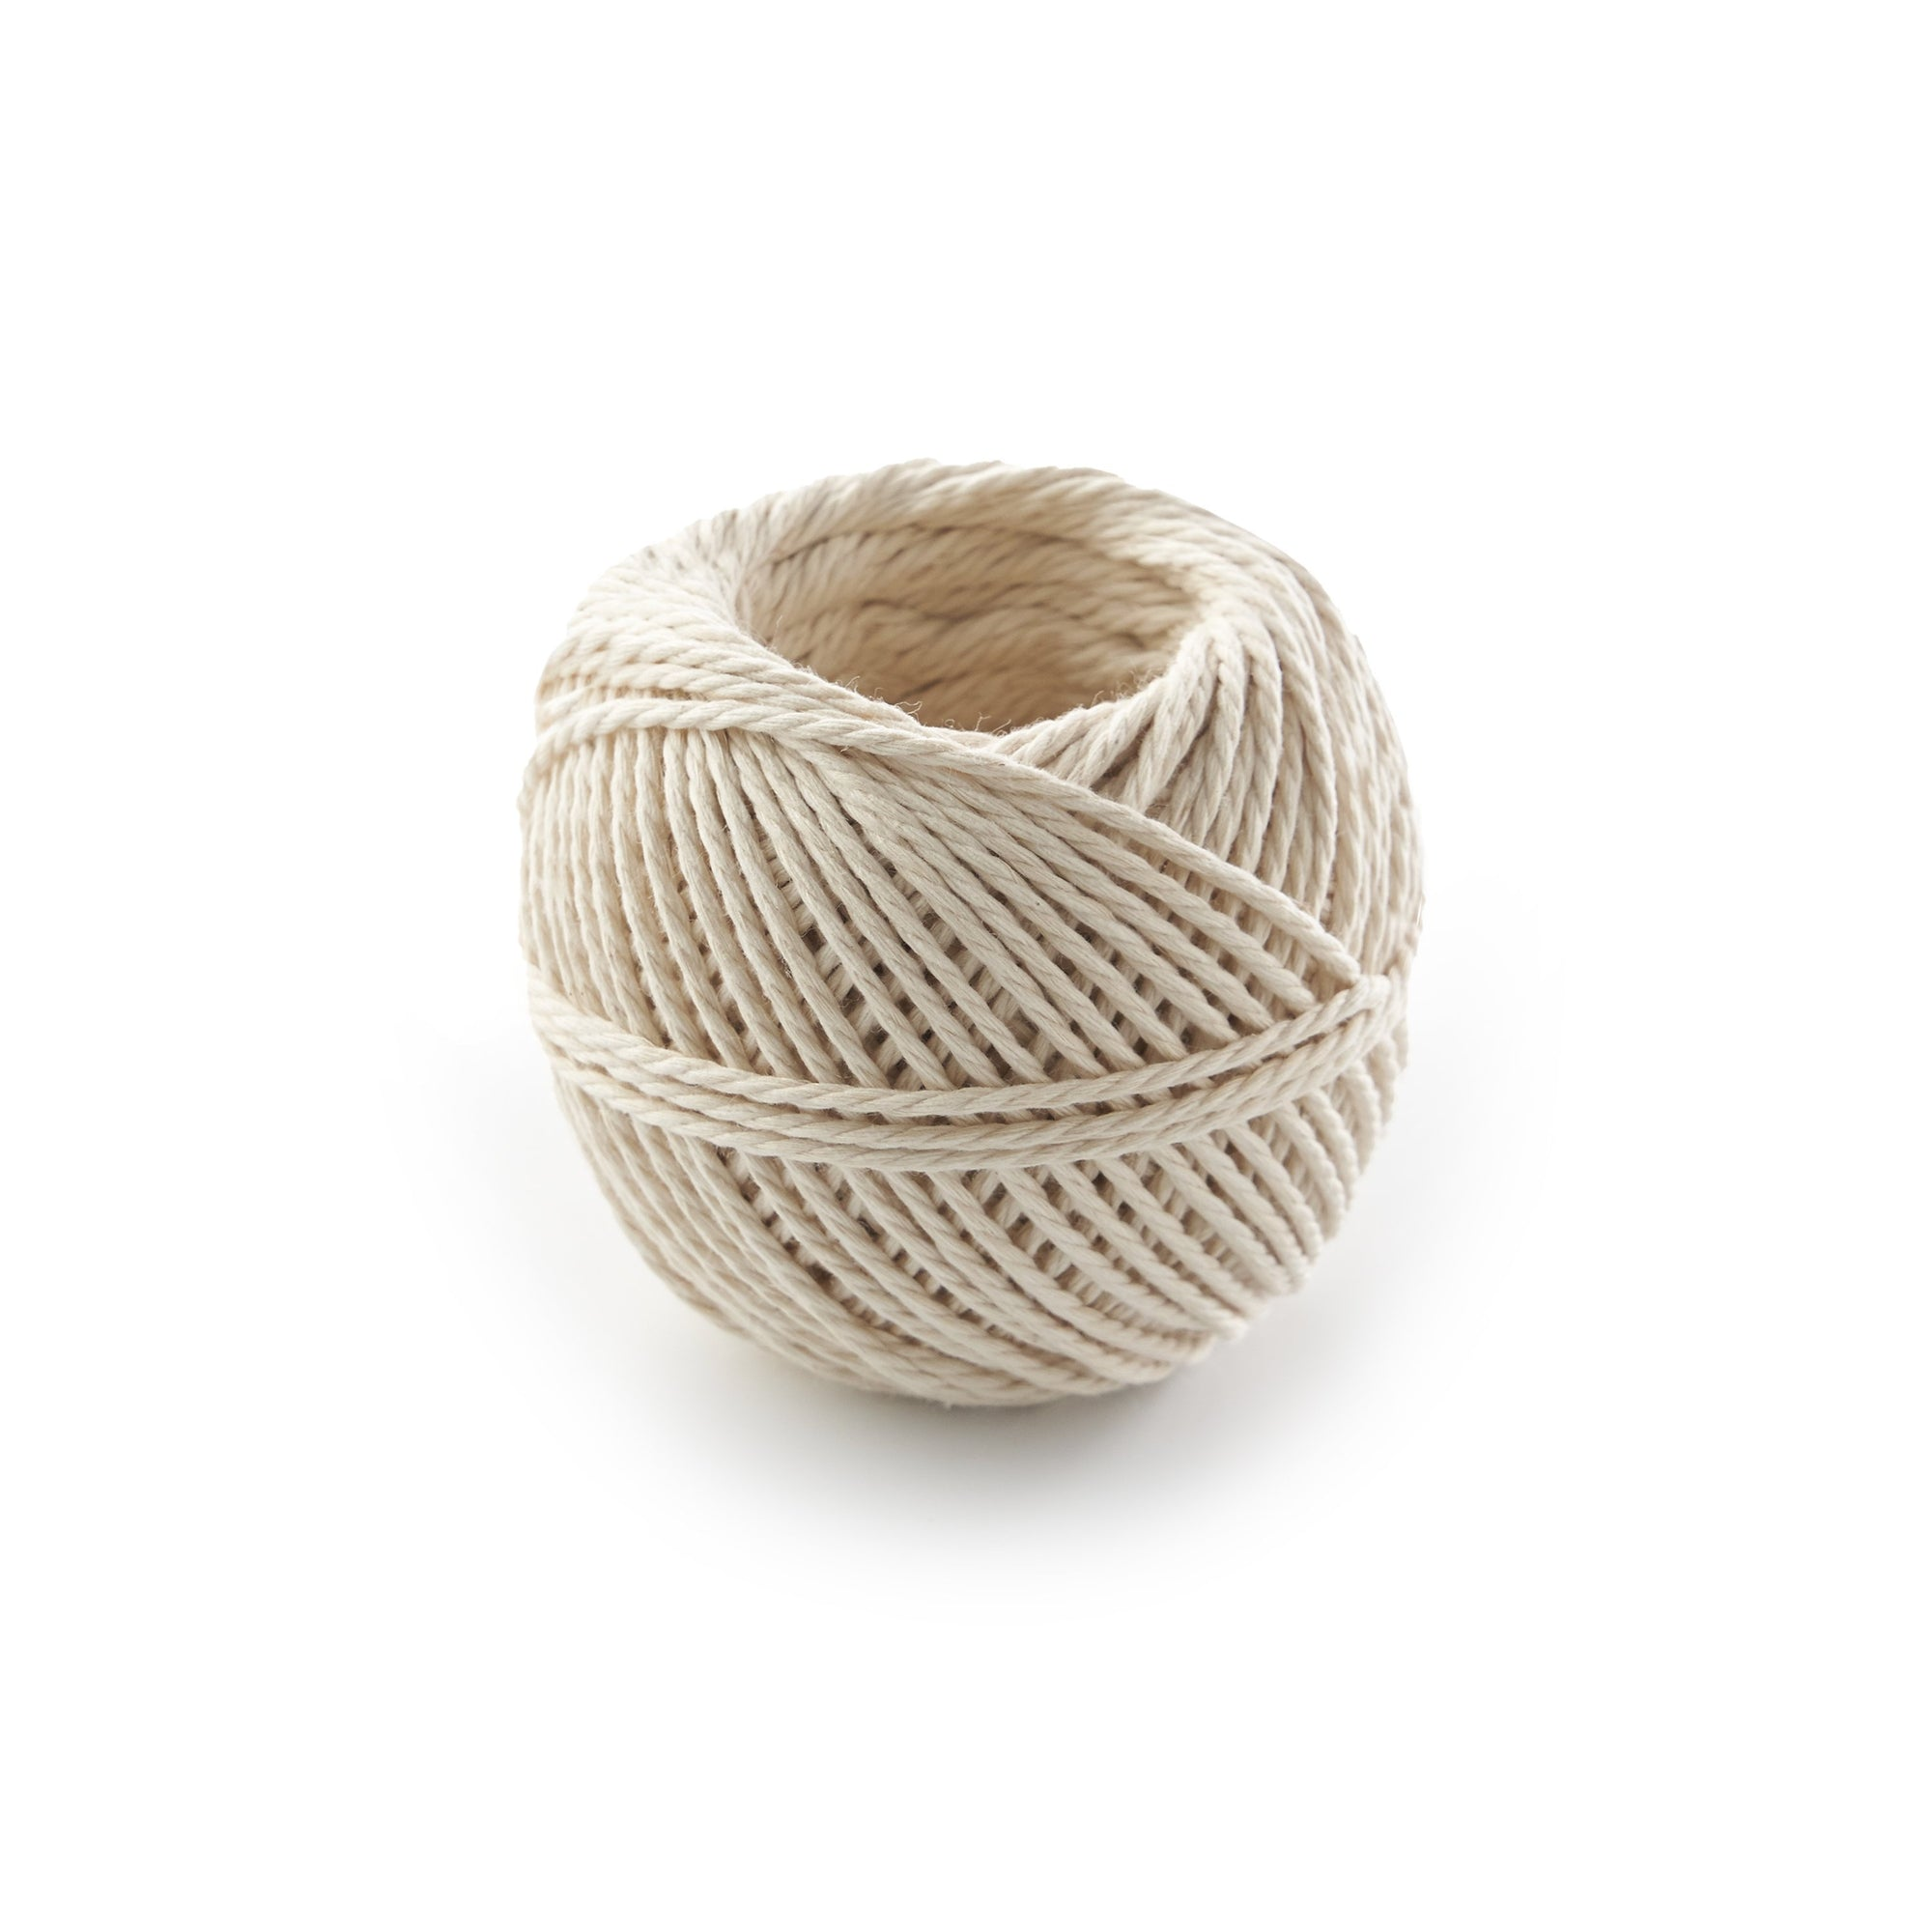 Recycled Natural Cotton String | String - The Naughty Shrew